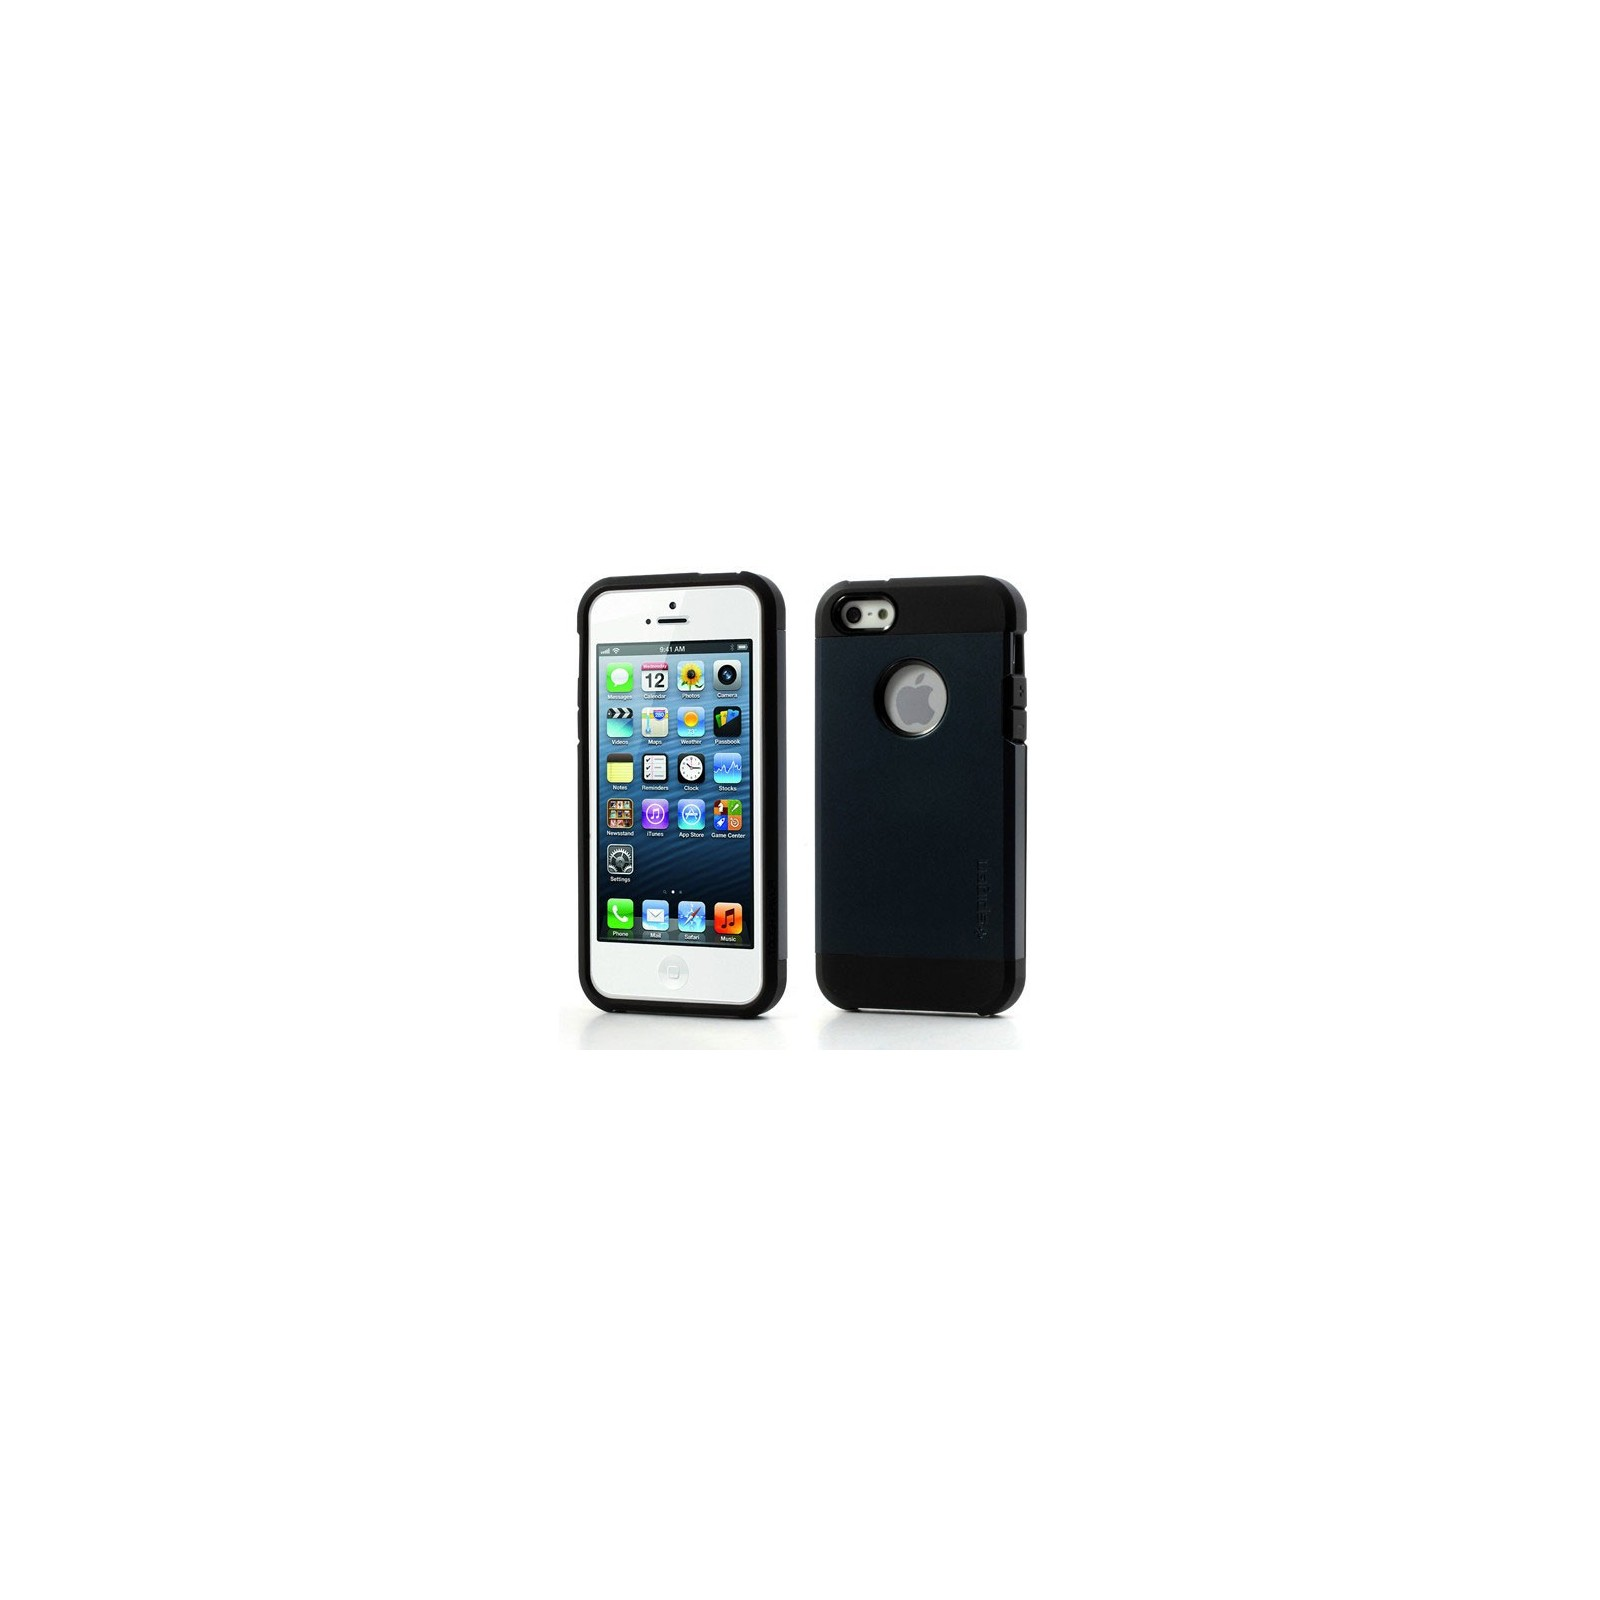 FUNDA SPG SPIGEN TOUGH ARMOR 2ND GENERACION PARA IPHONE 4 & 4s Color Azul Oscuro ARREGLATELO - 1